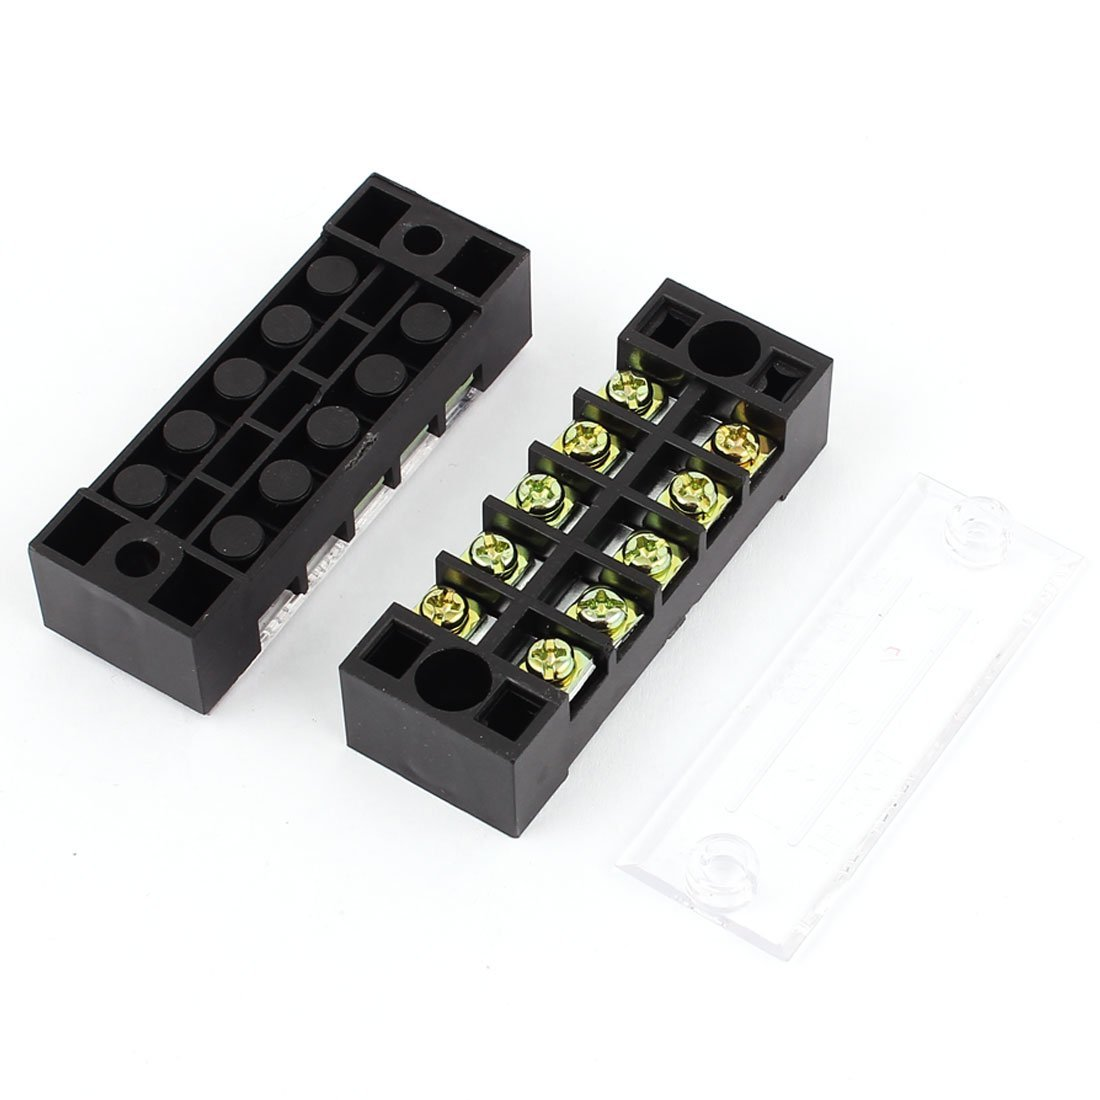 Aexit 2 Pcs 600V 15A 5P Dual Row Barrier Terminal Block Cable Connector Bar